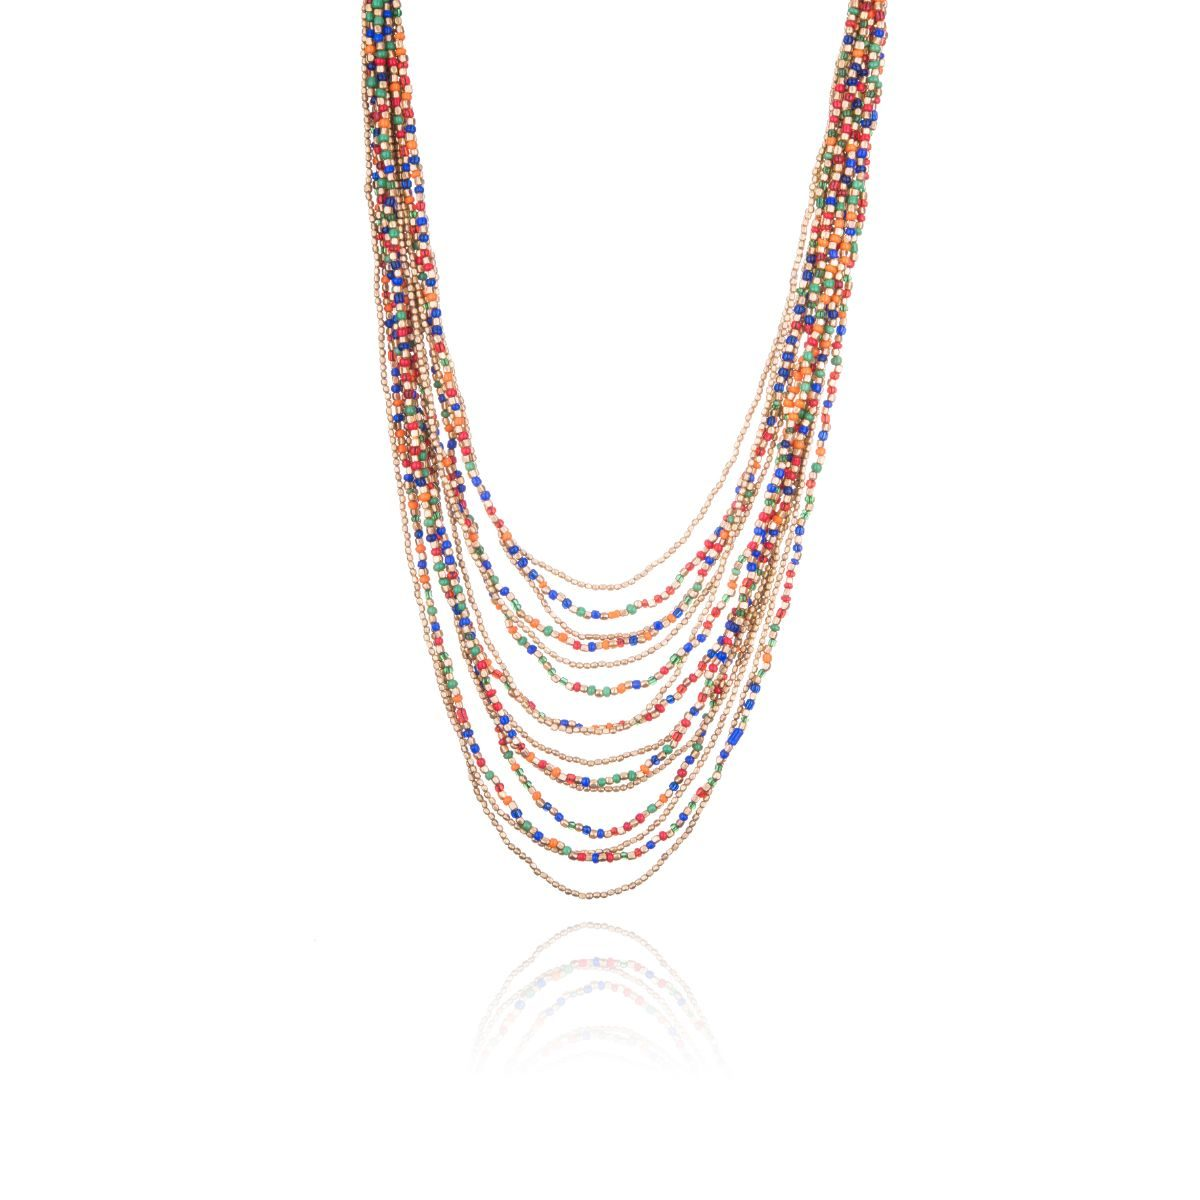 Thessaloniki short necklace with a multitude of straps with colored and golden beads of different sizes cascading